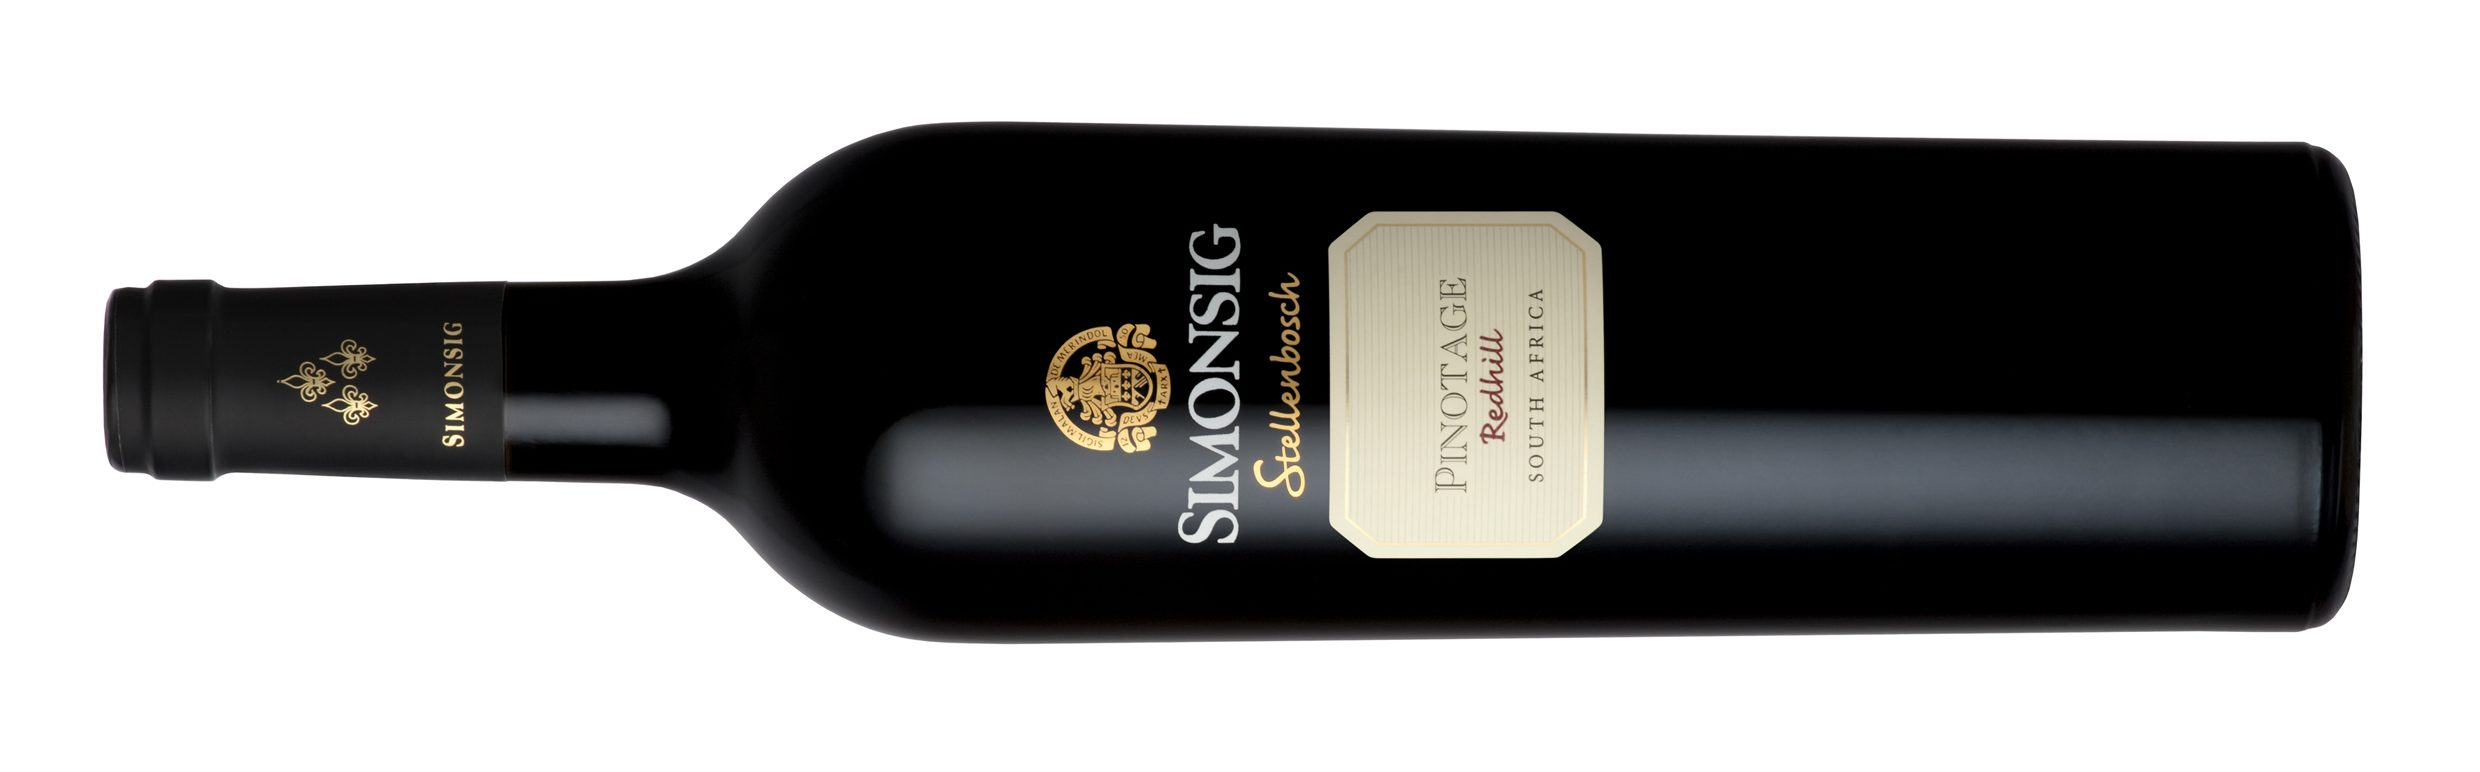 Simonsig Estate Celebrates 50th Year with Top 100 Wines Ratings photo